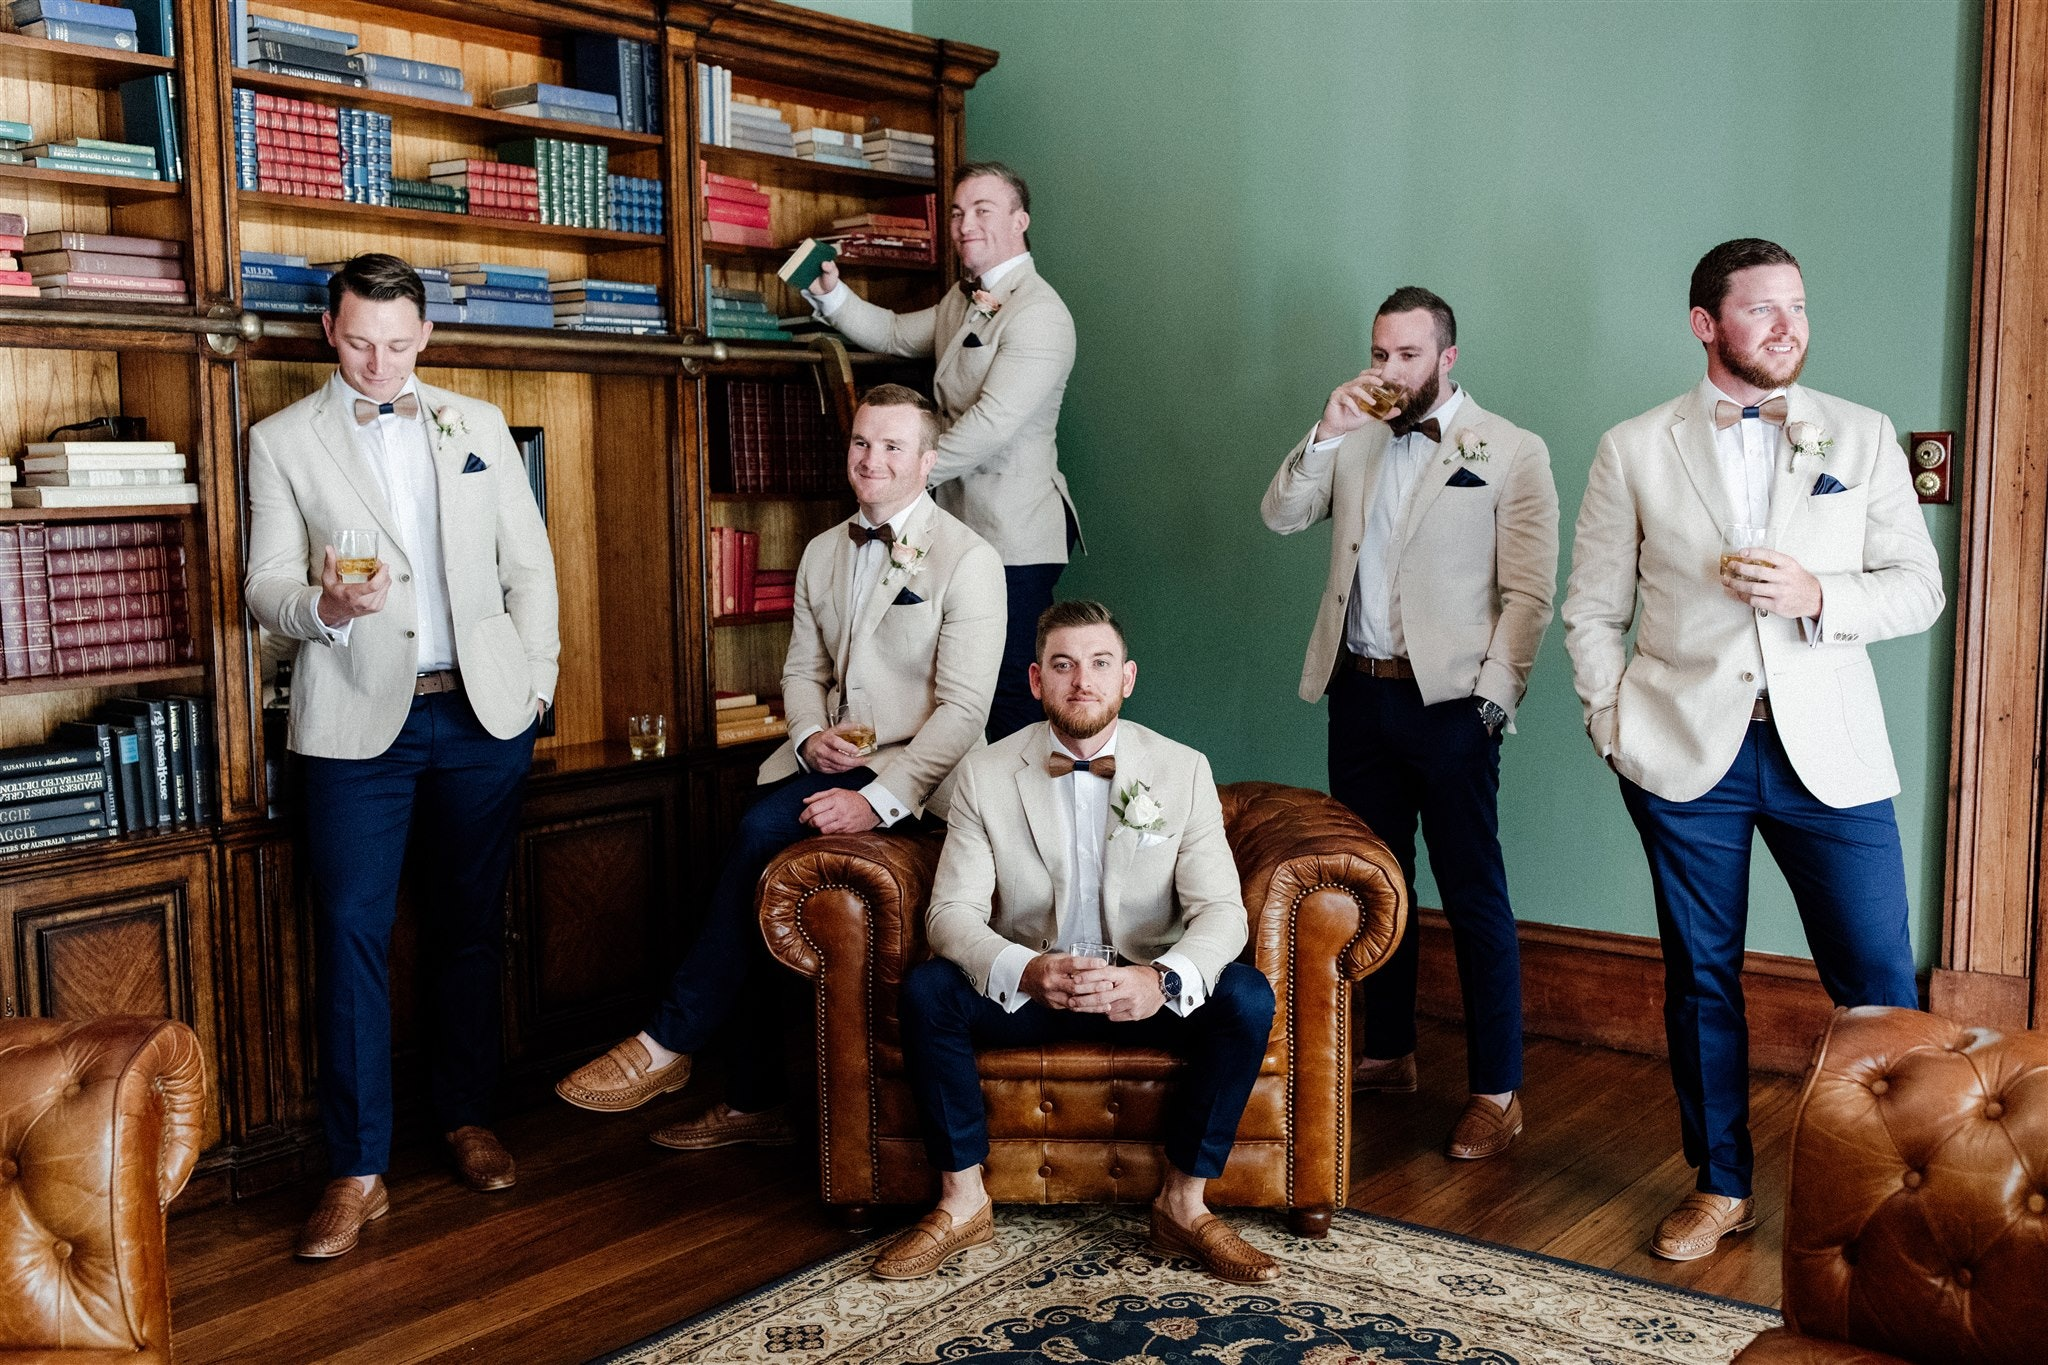 Groom and groomsmen spending time together in library